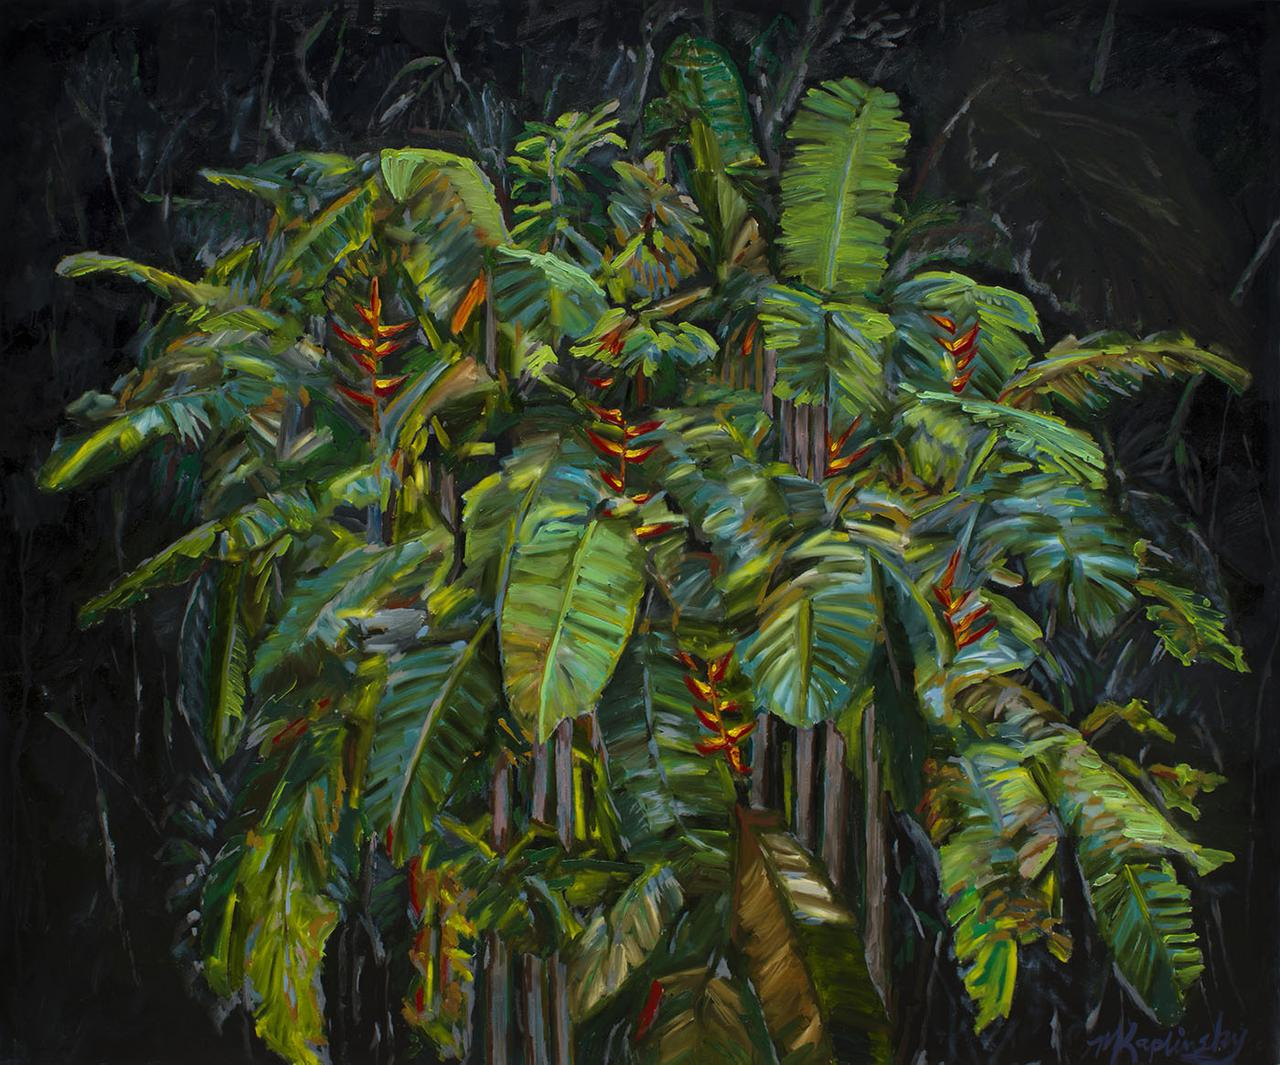 portfolio/Night Plant - 60x72 oil on canvas by Matt Kaplinsky.jpg